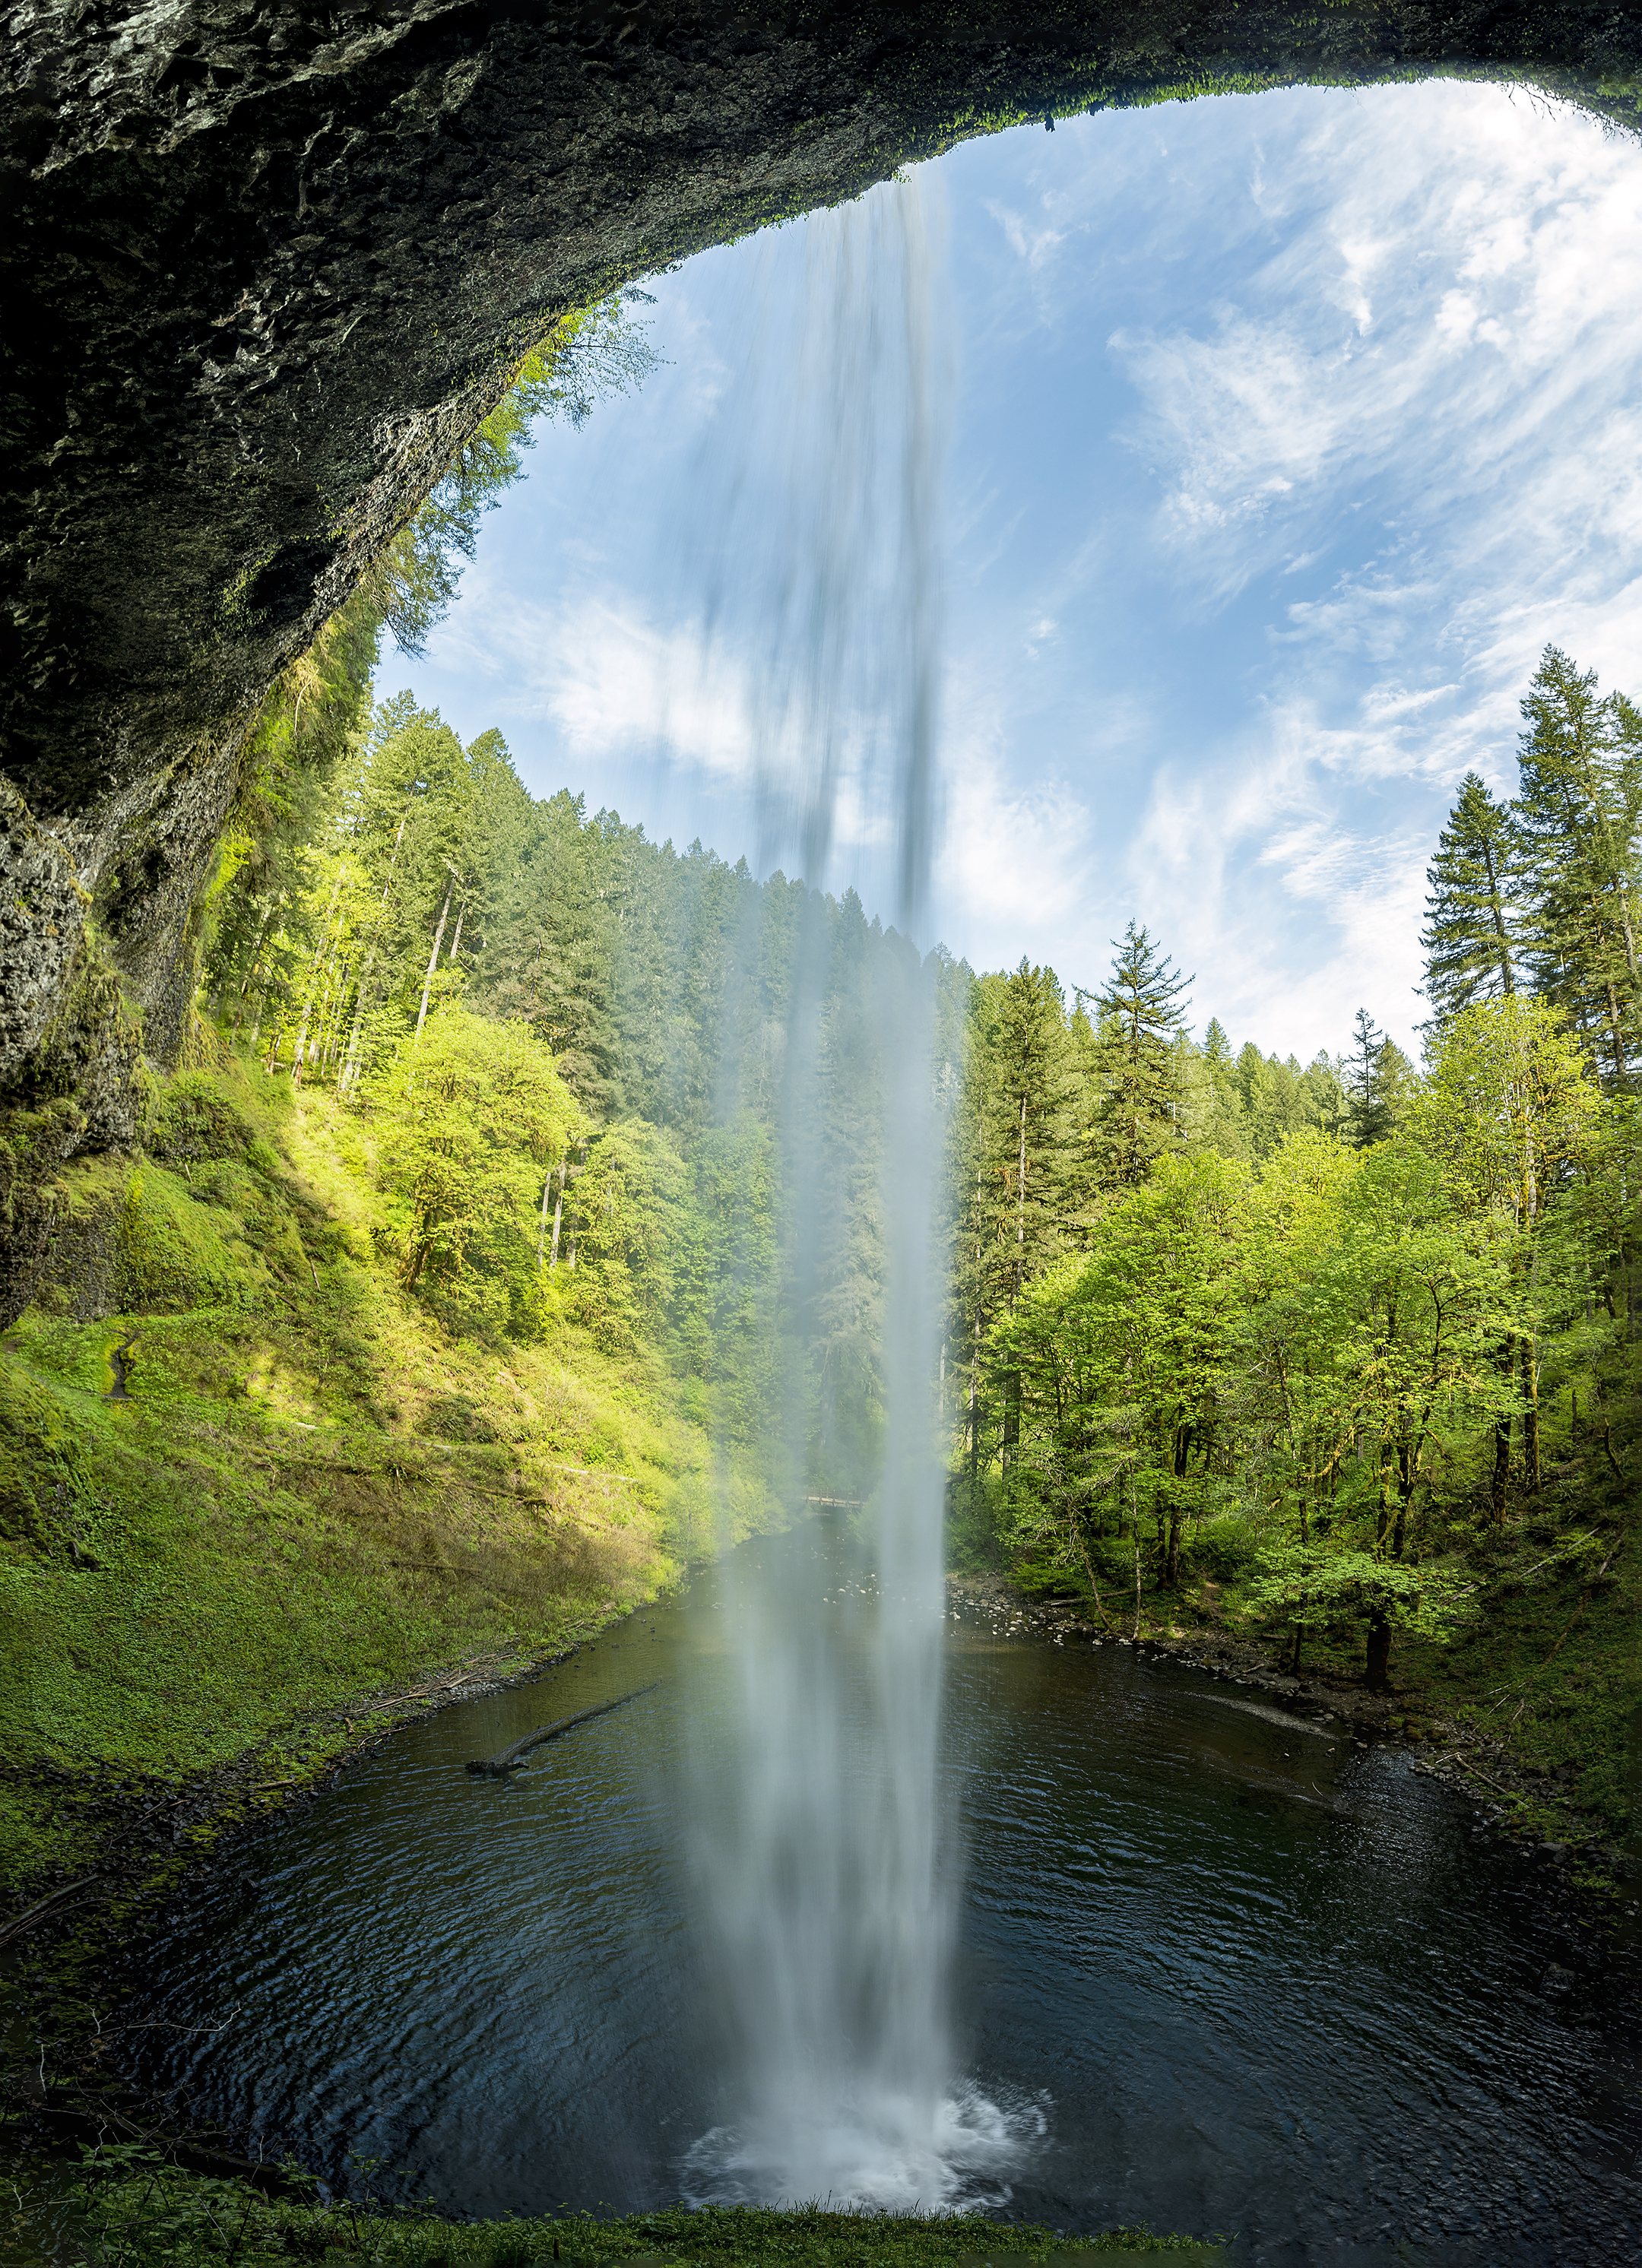 5-photo photomerge silver falls state park behind south falls